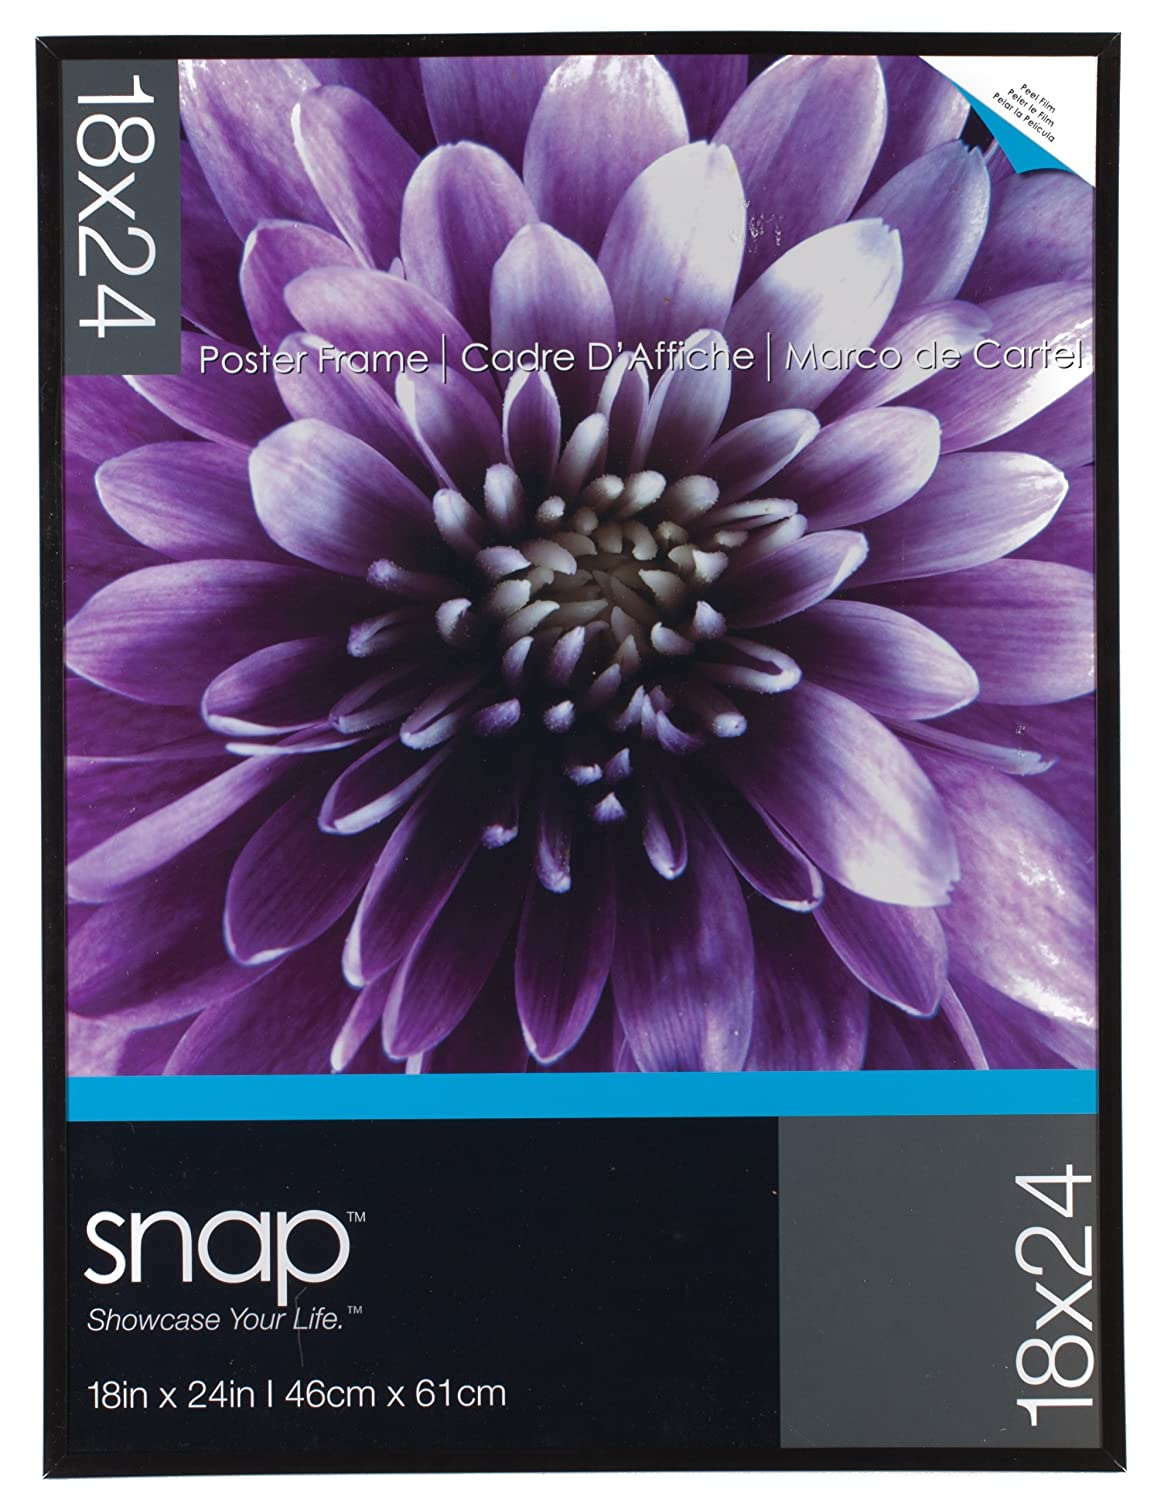 Amazon.com: SNAP 16x20 Black Snap On Poster Frame: Home & Kitchen